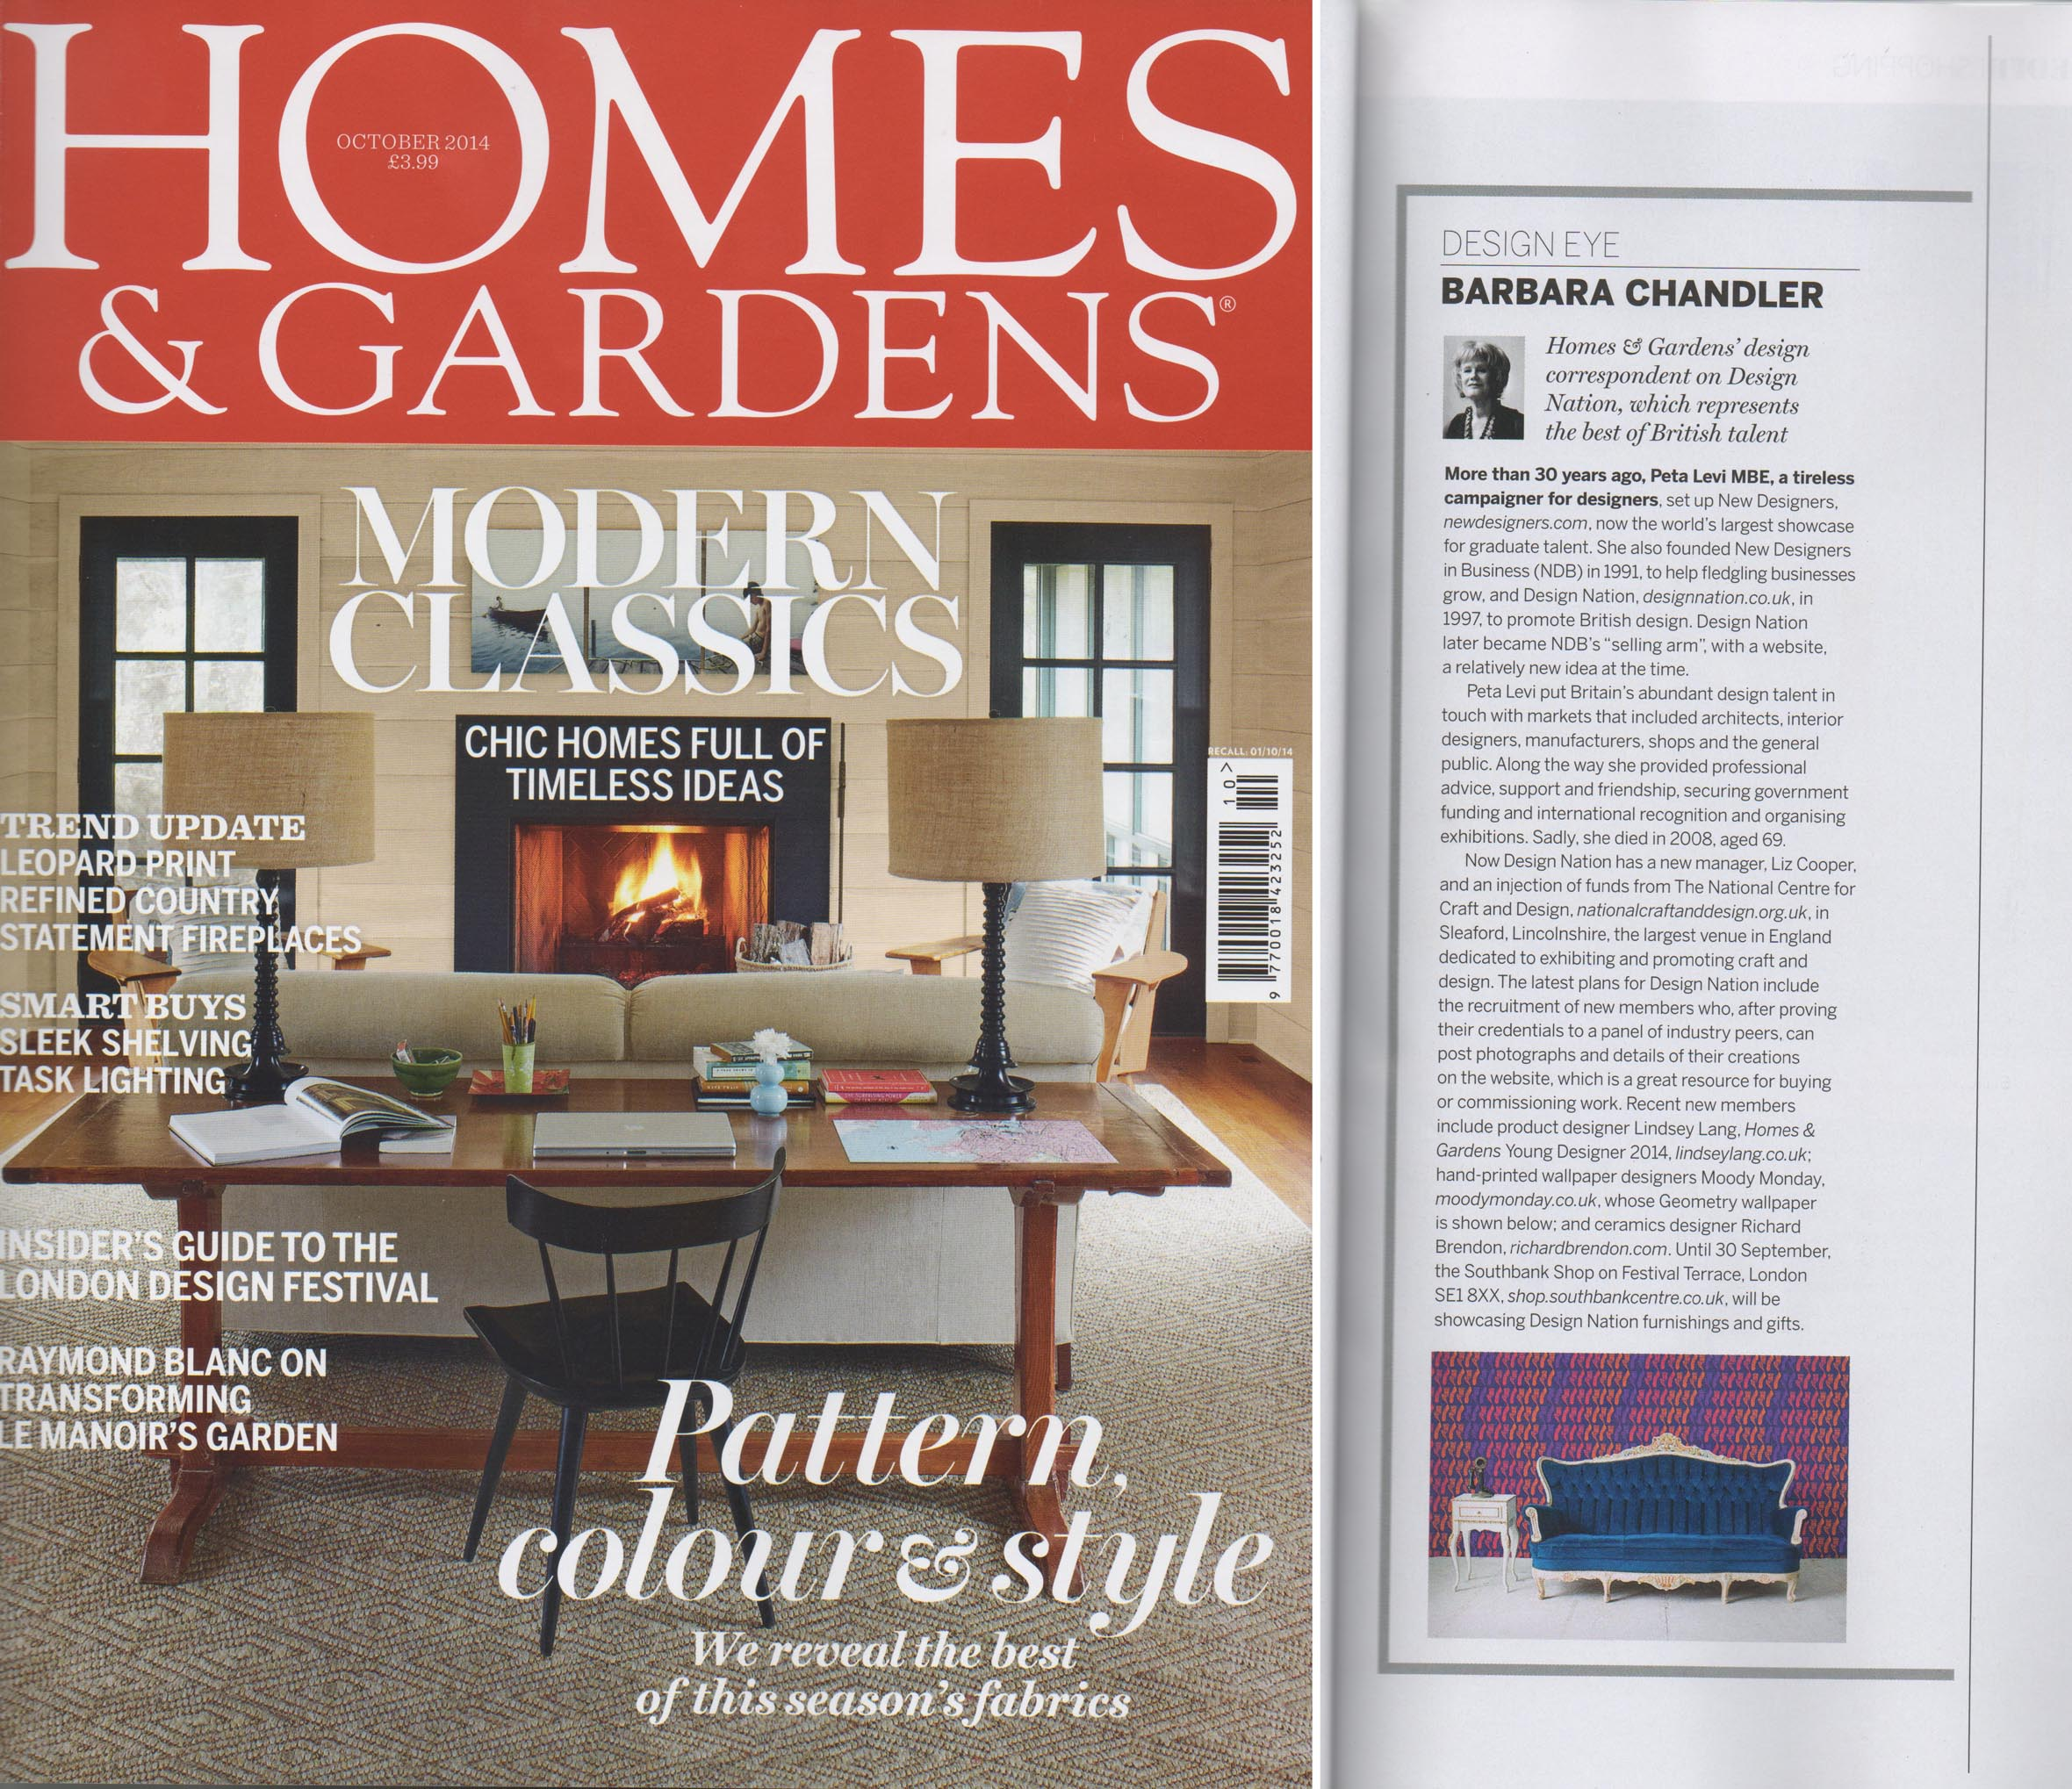 Homes and Gardens, October 2014 article by Barbara Chandler. Design Eye feature on the best of British talent.